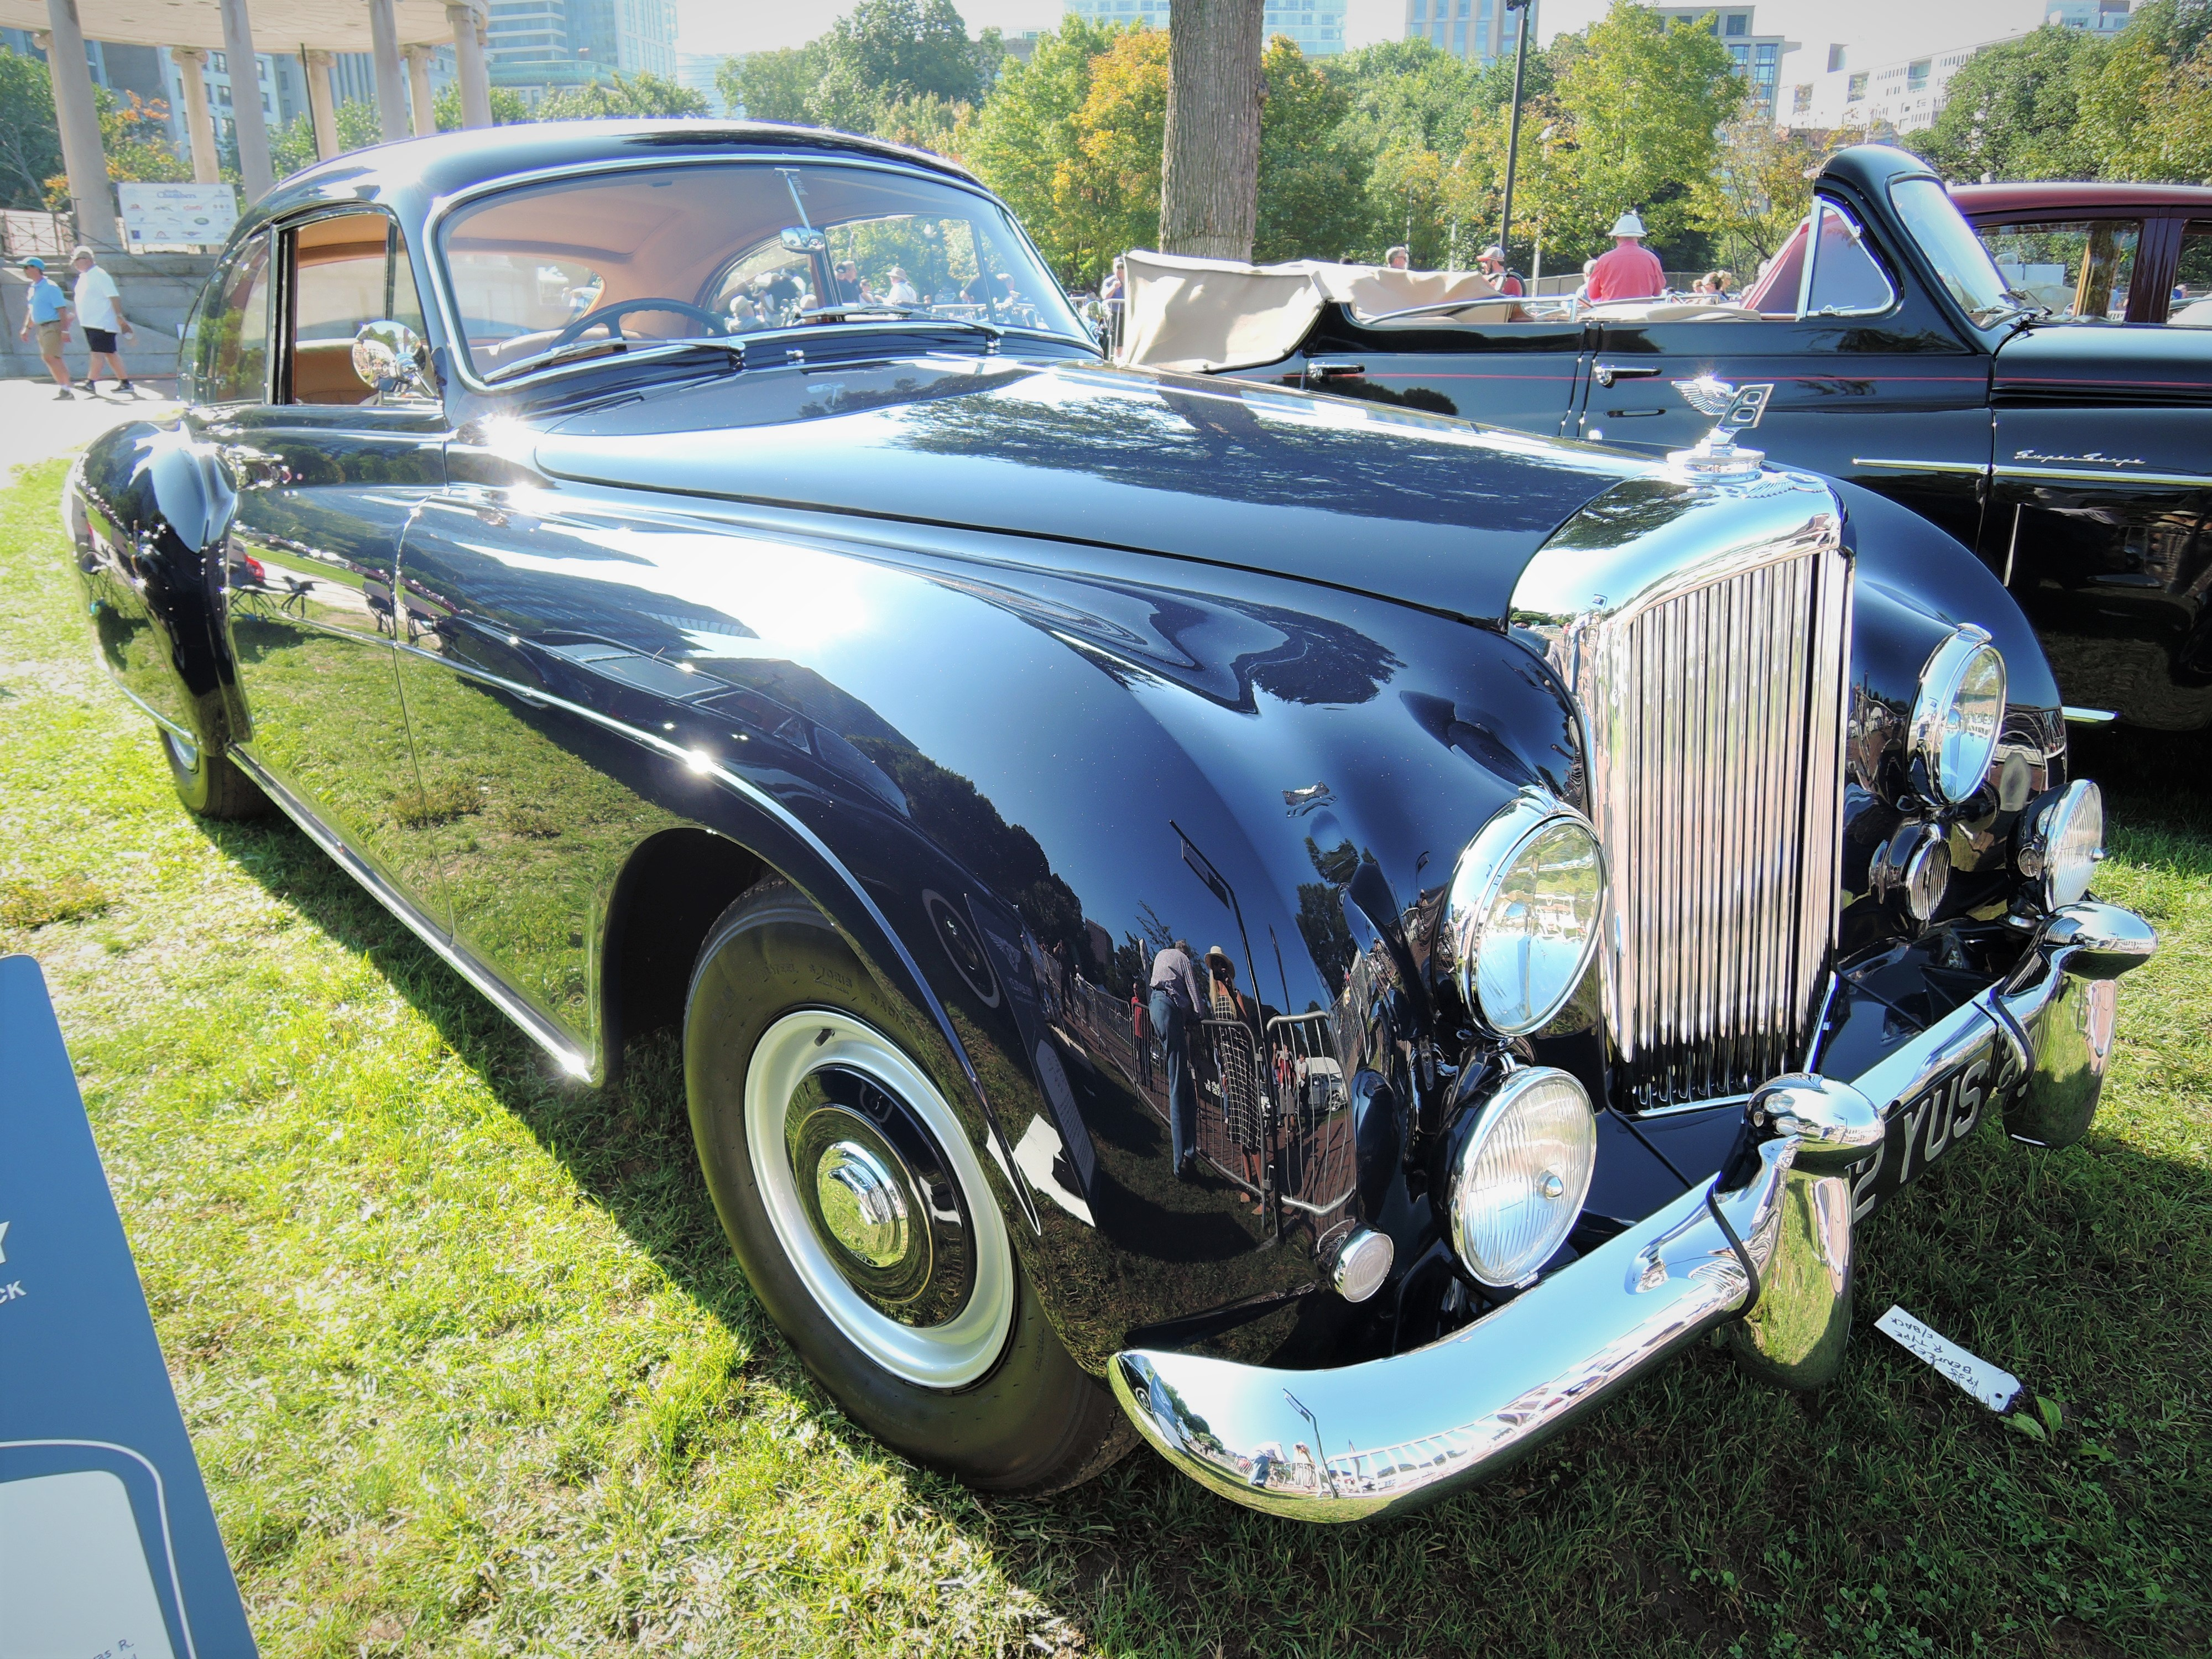 black 1955 Bentley R Type Continental Fastback - The Boston Cup 2017